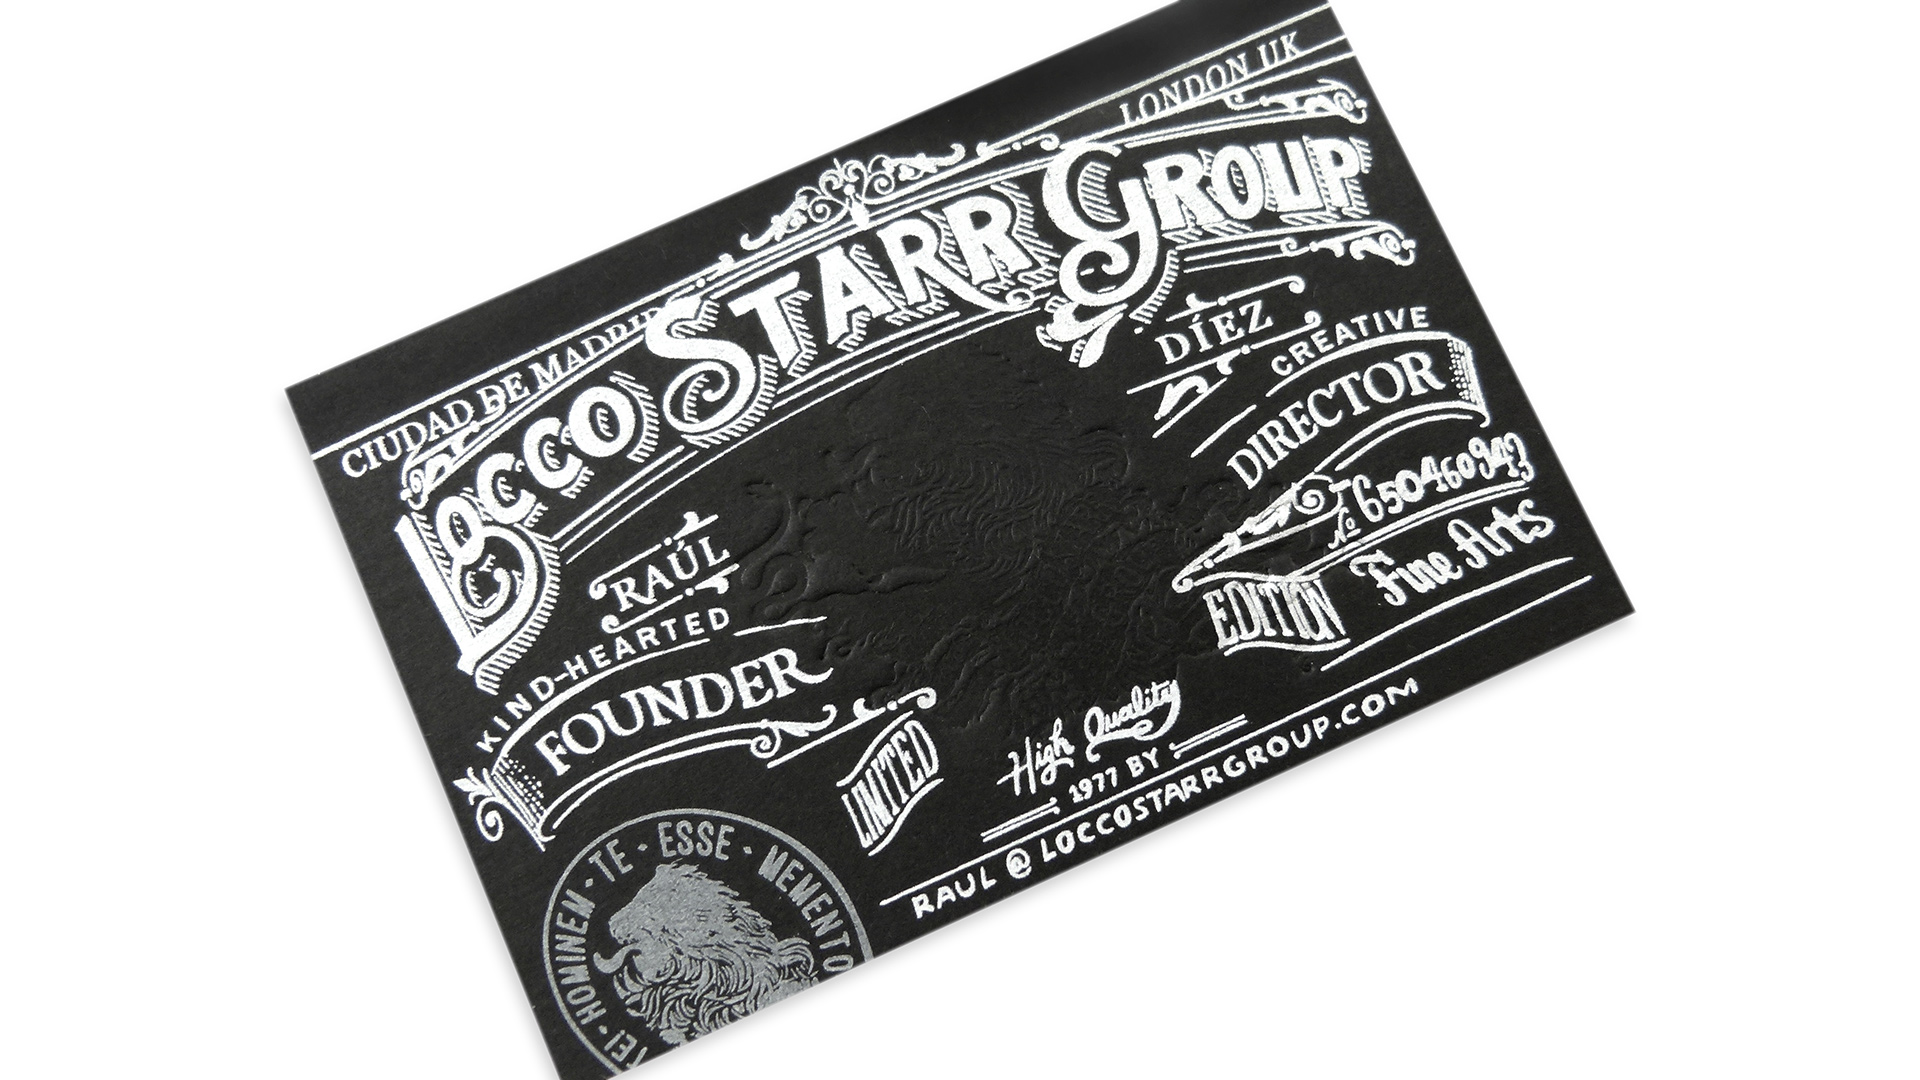 Locco Starr Group Business Cards - PaperSpecs